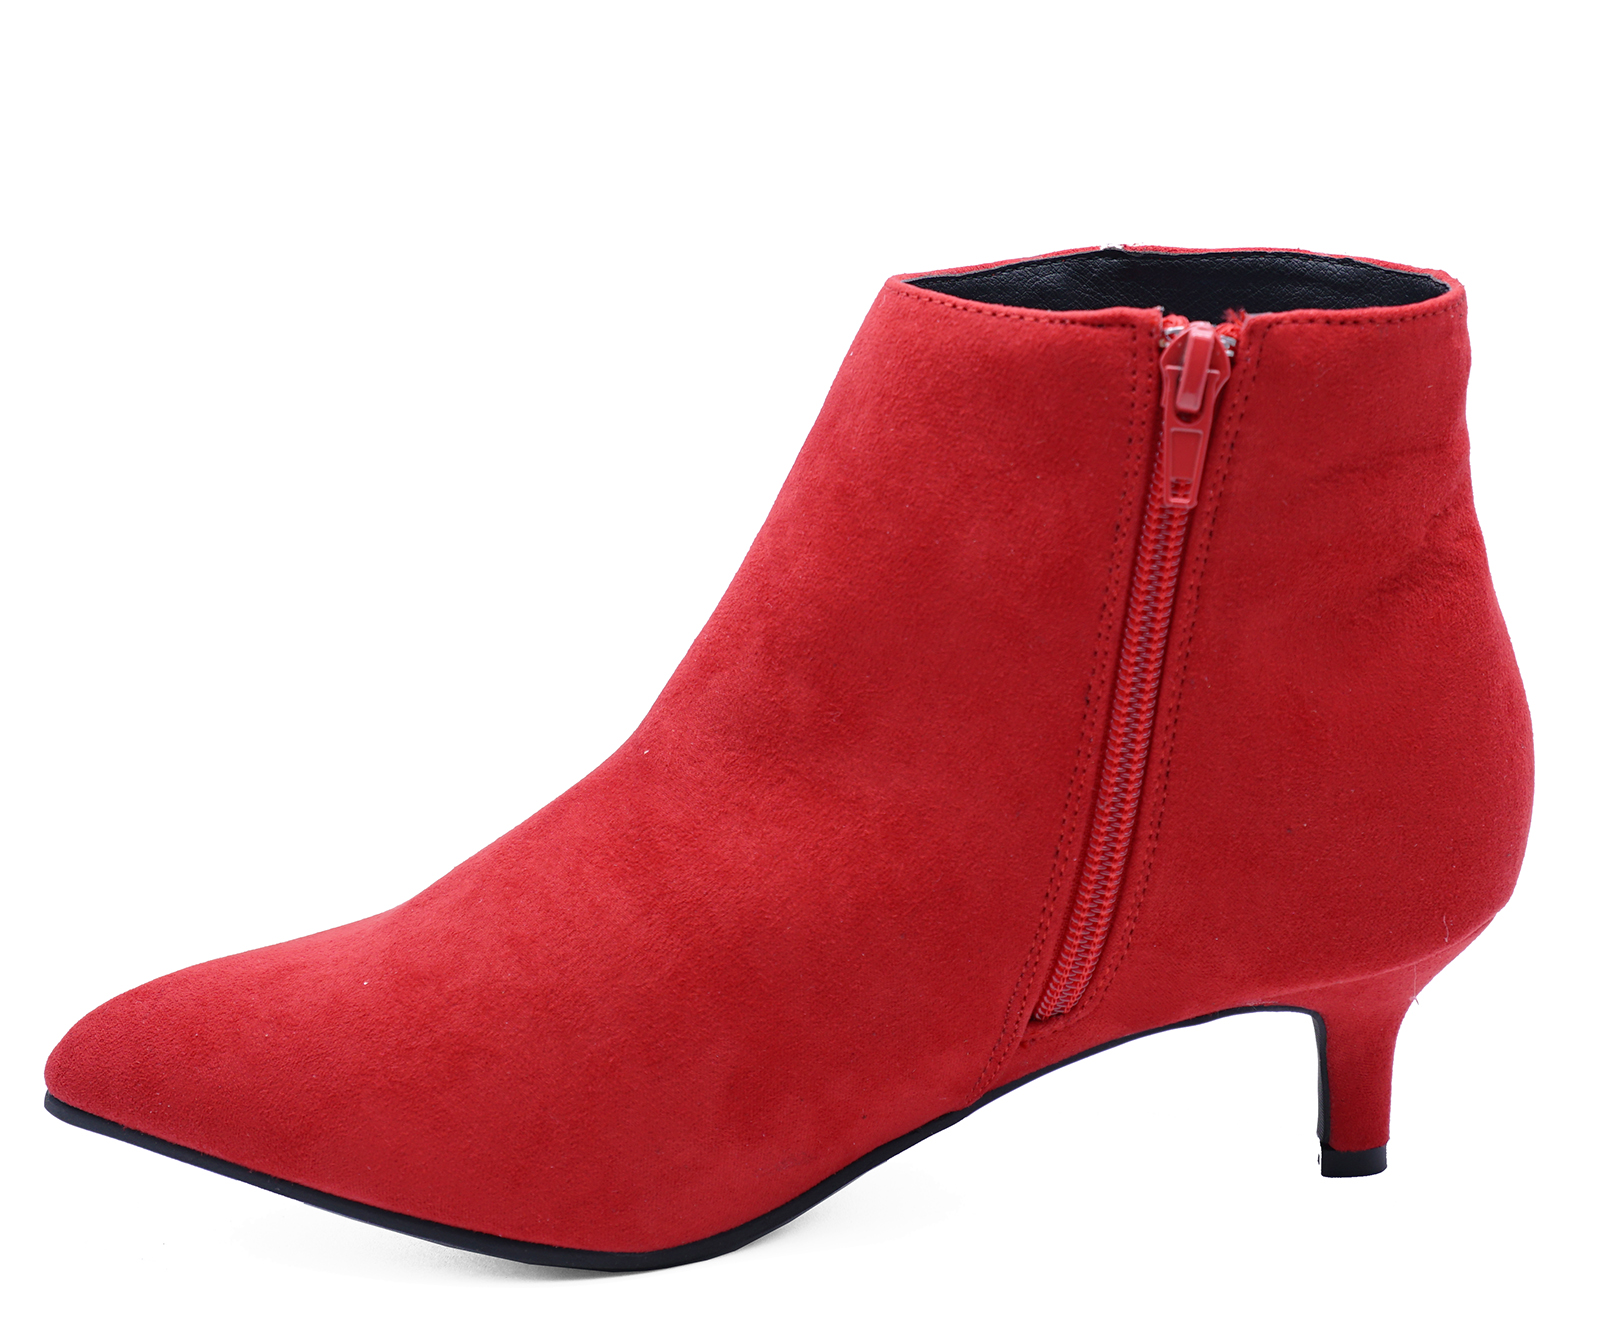 WOMENS RED ZIP UP KITTEN HEEL SUEDETTE WIDE FIT ANKLE BOOTS SHOES SIZES 3 9